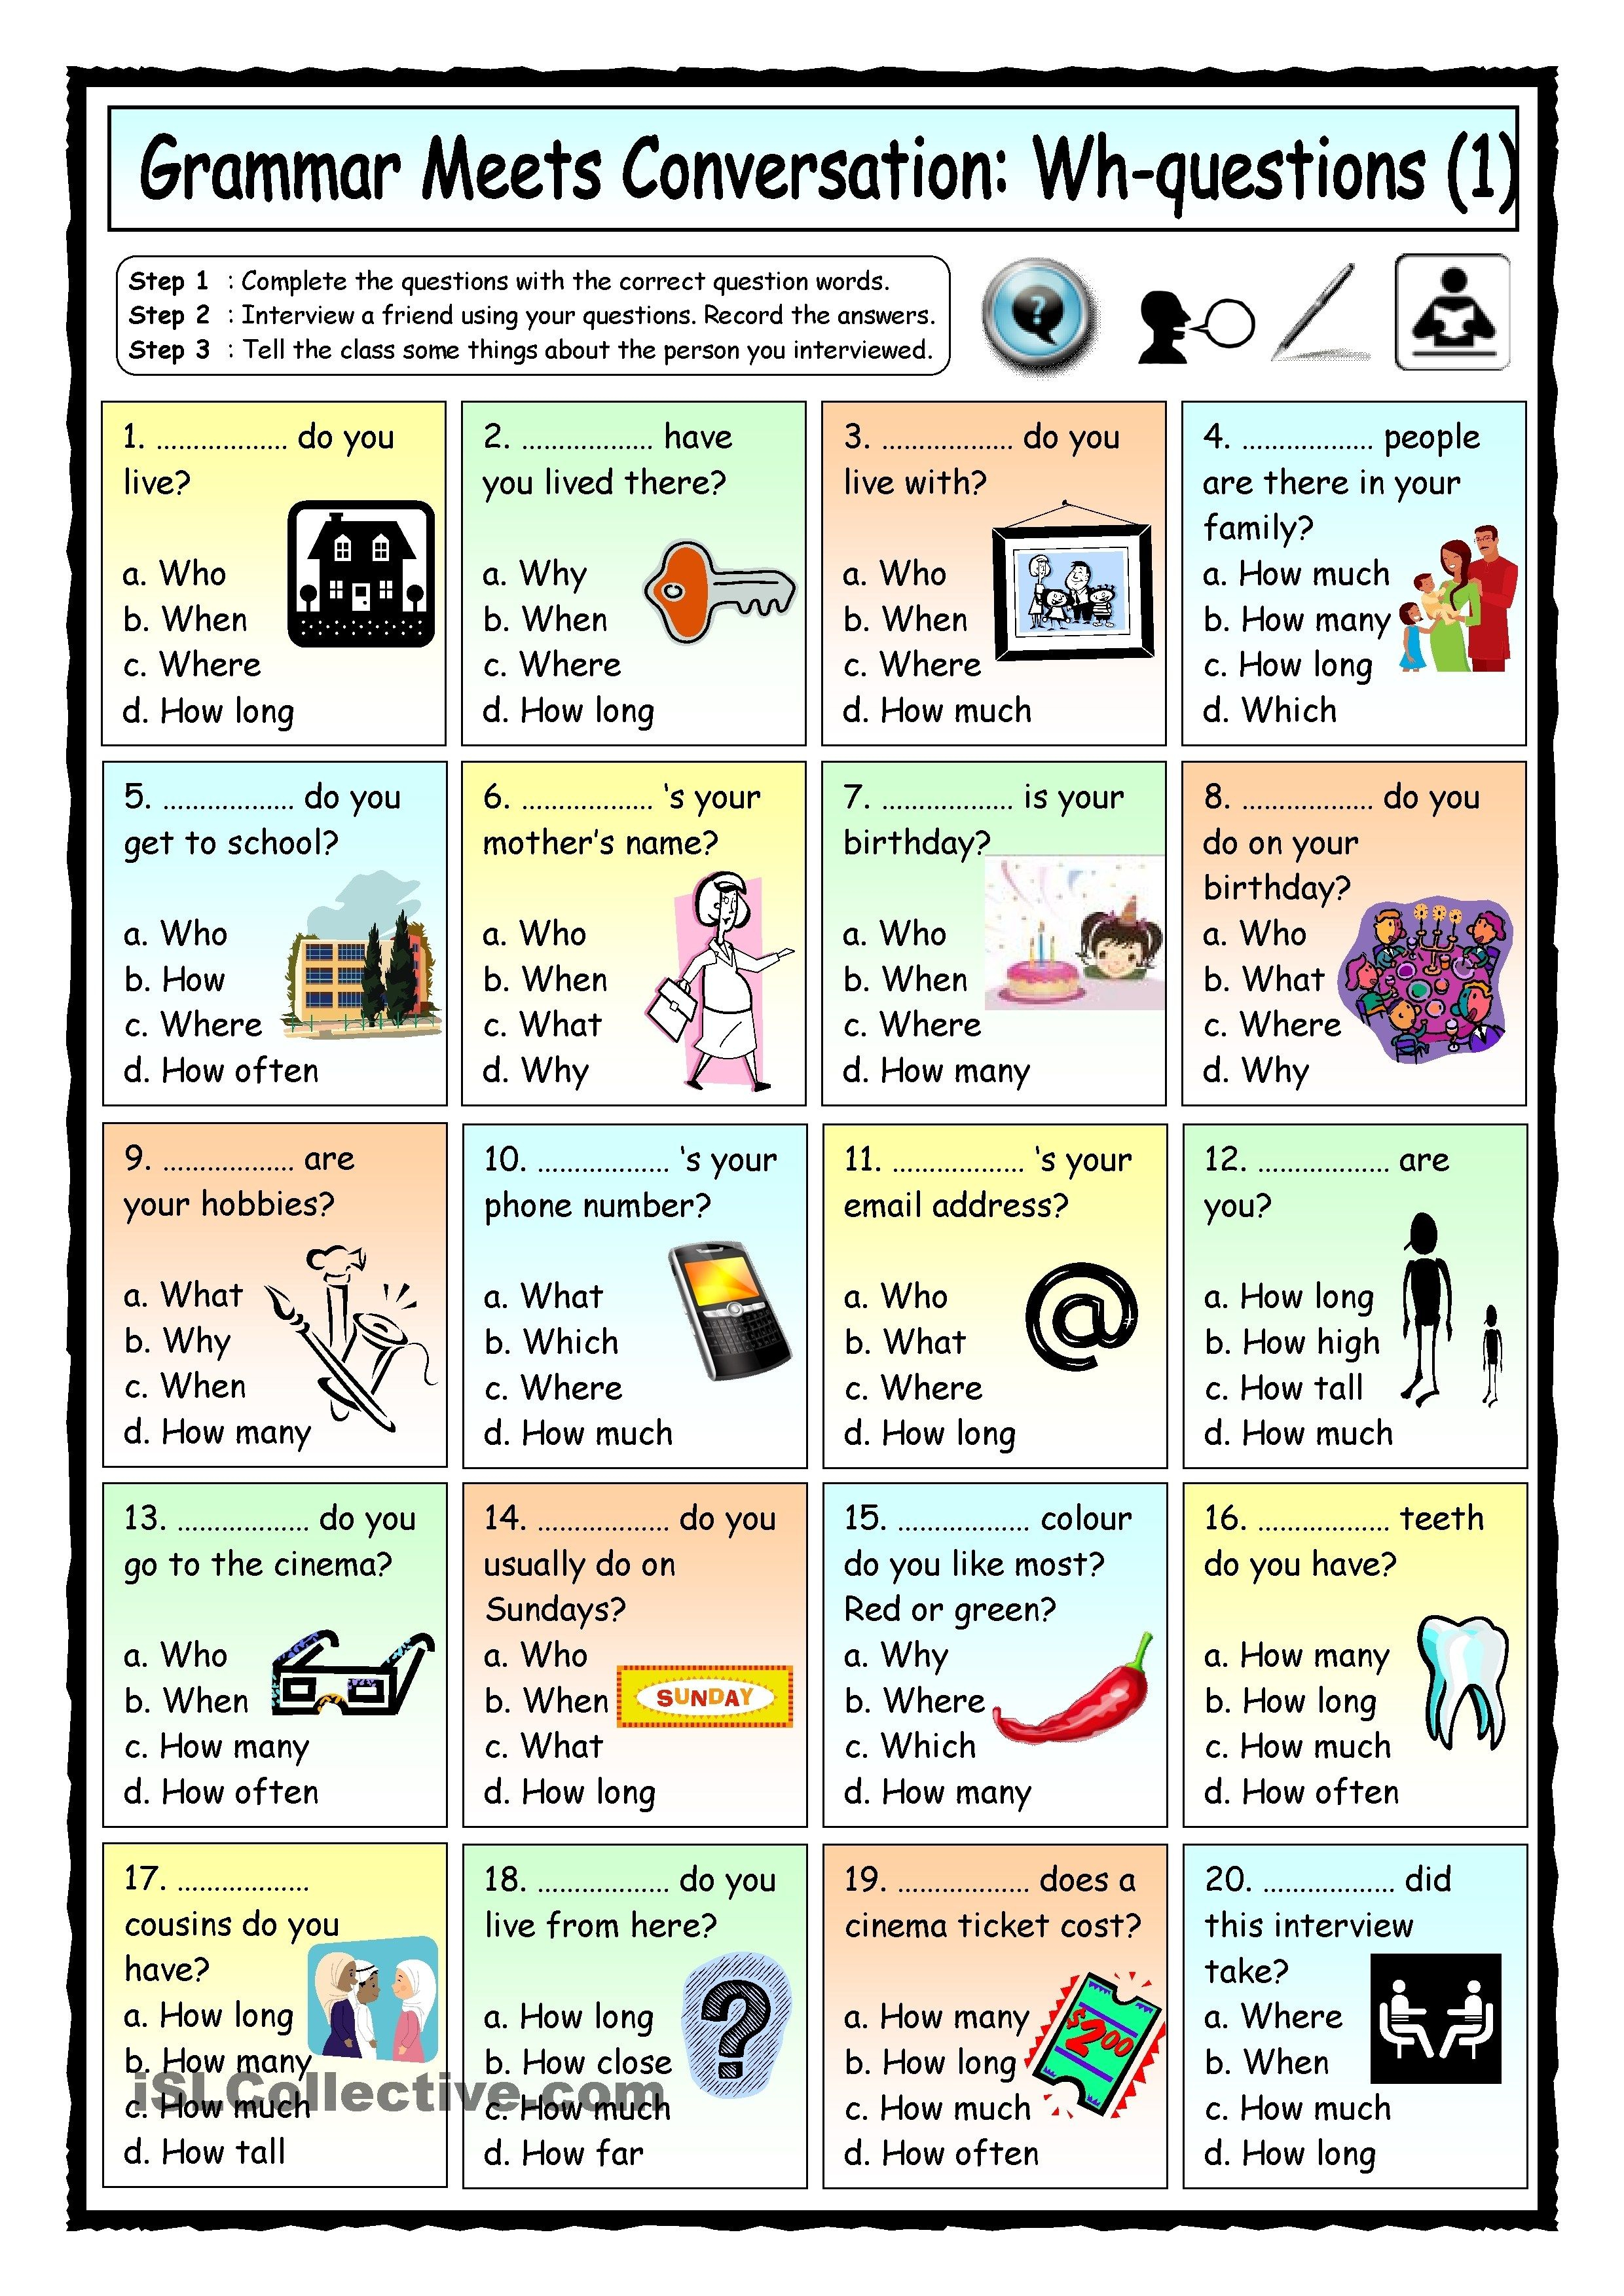 Grammar Meets Conversation: Wh-Questions (1) - Getting To Know You - Free Printable English Conversation Worksheets